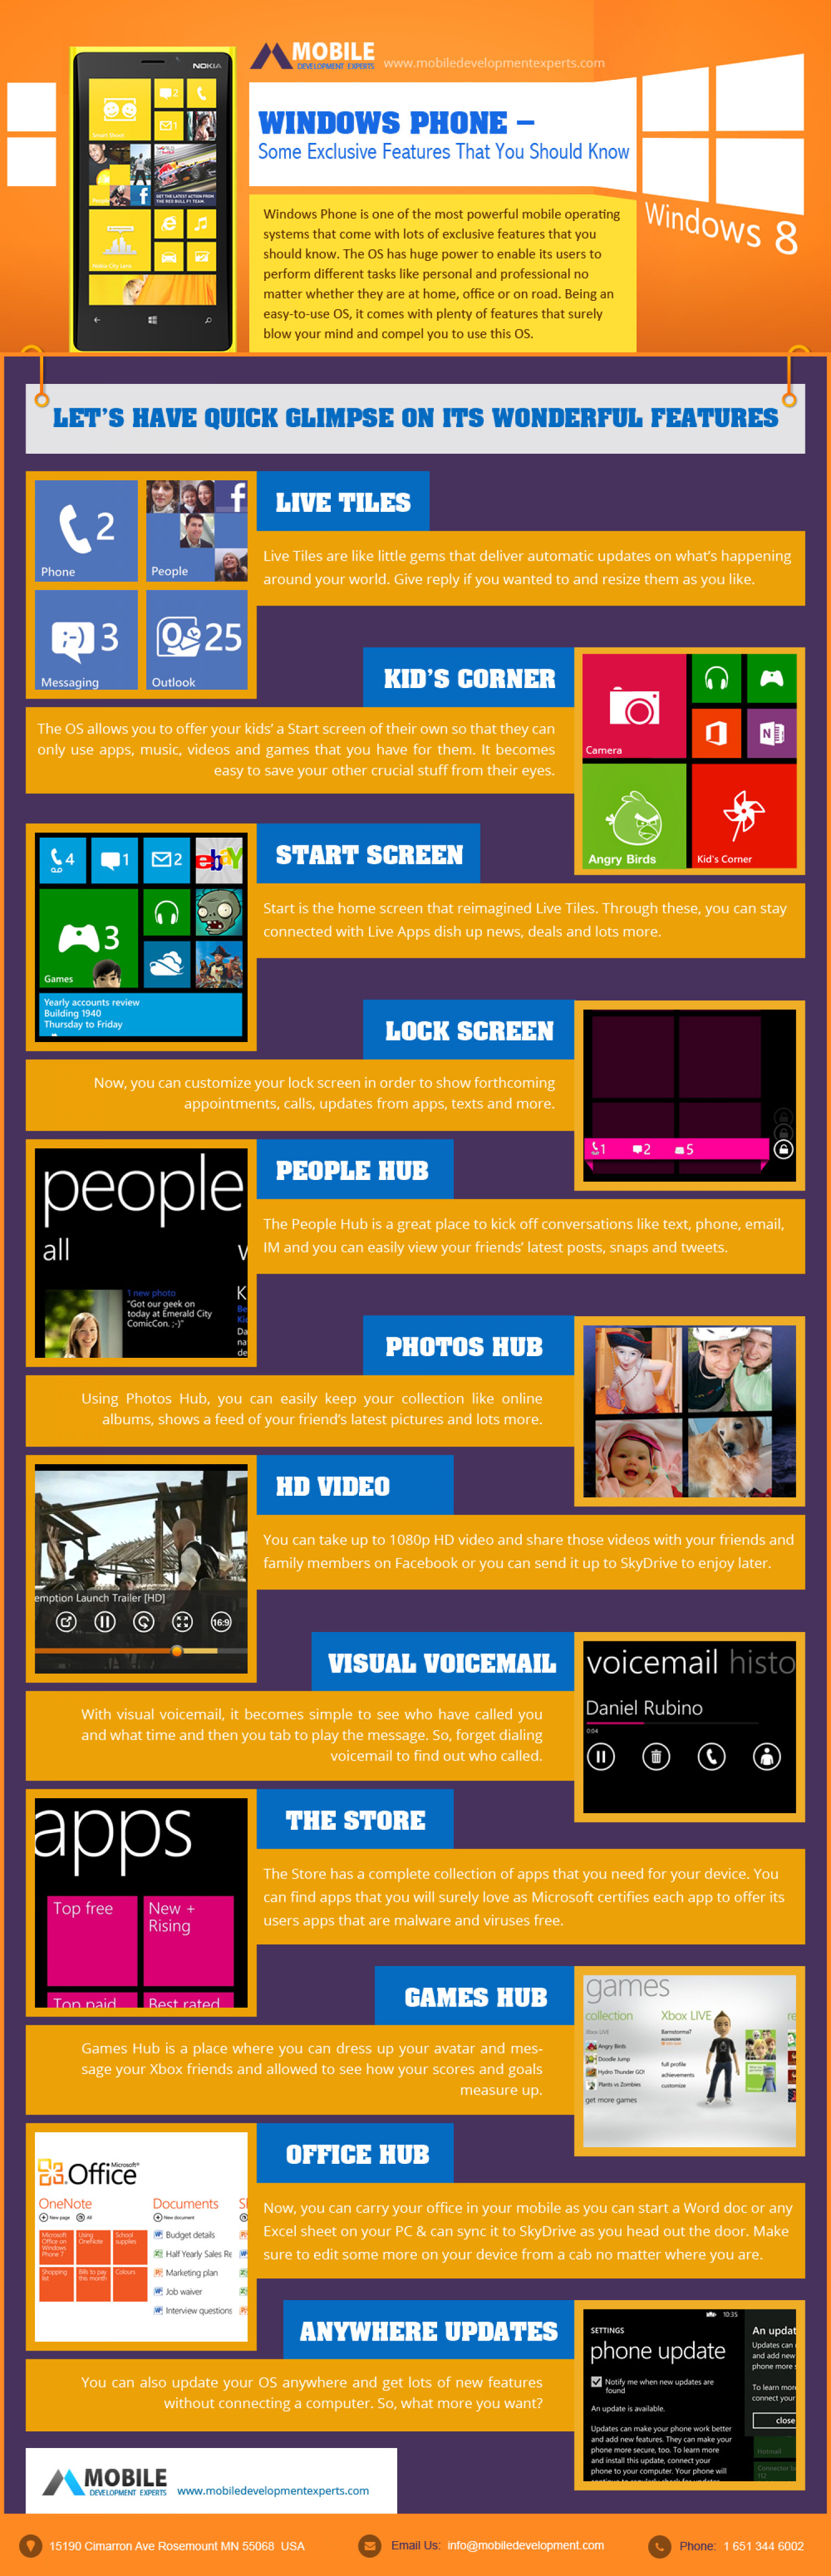 Windows Phone - Some Exclusive Features That You Should Know Infographic